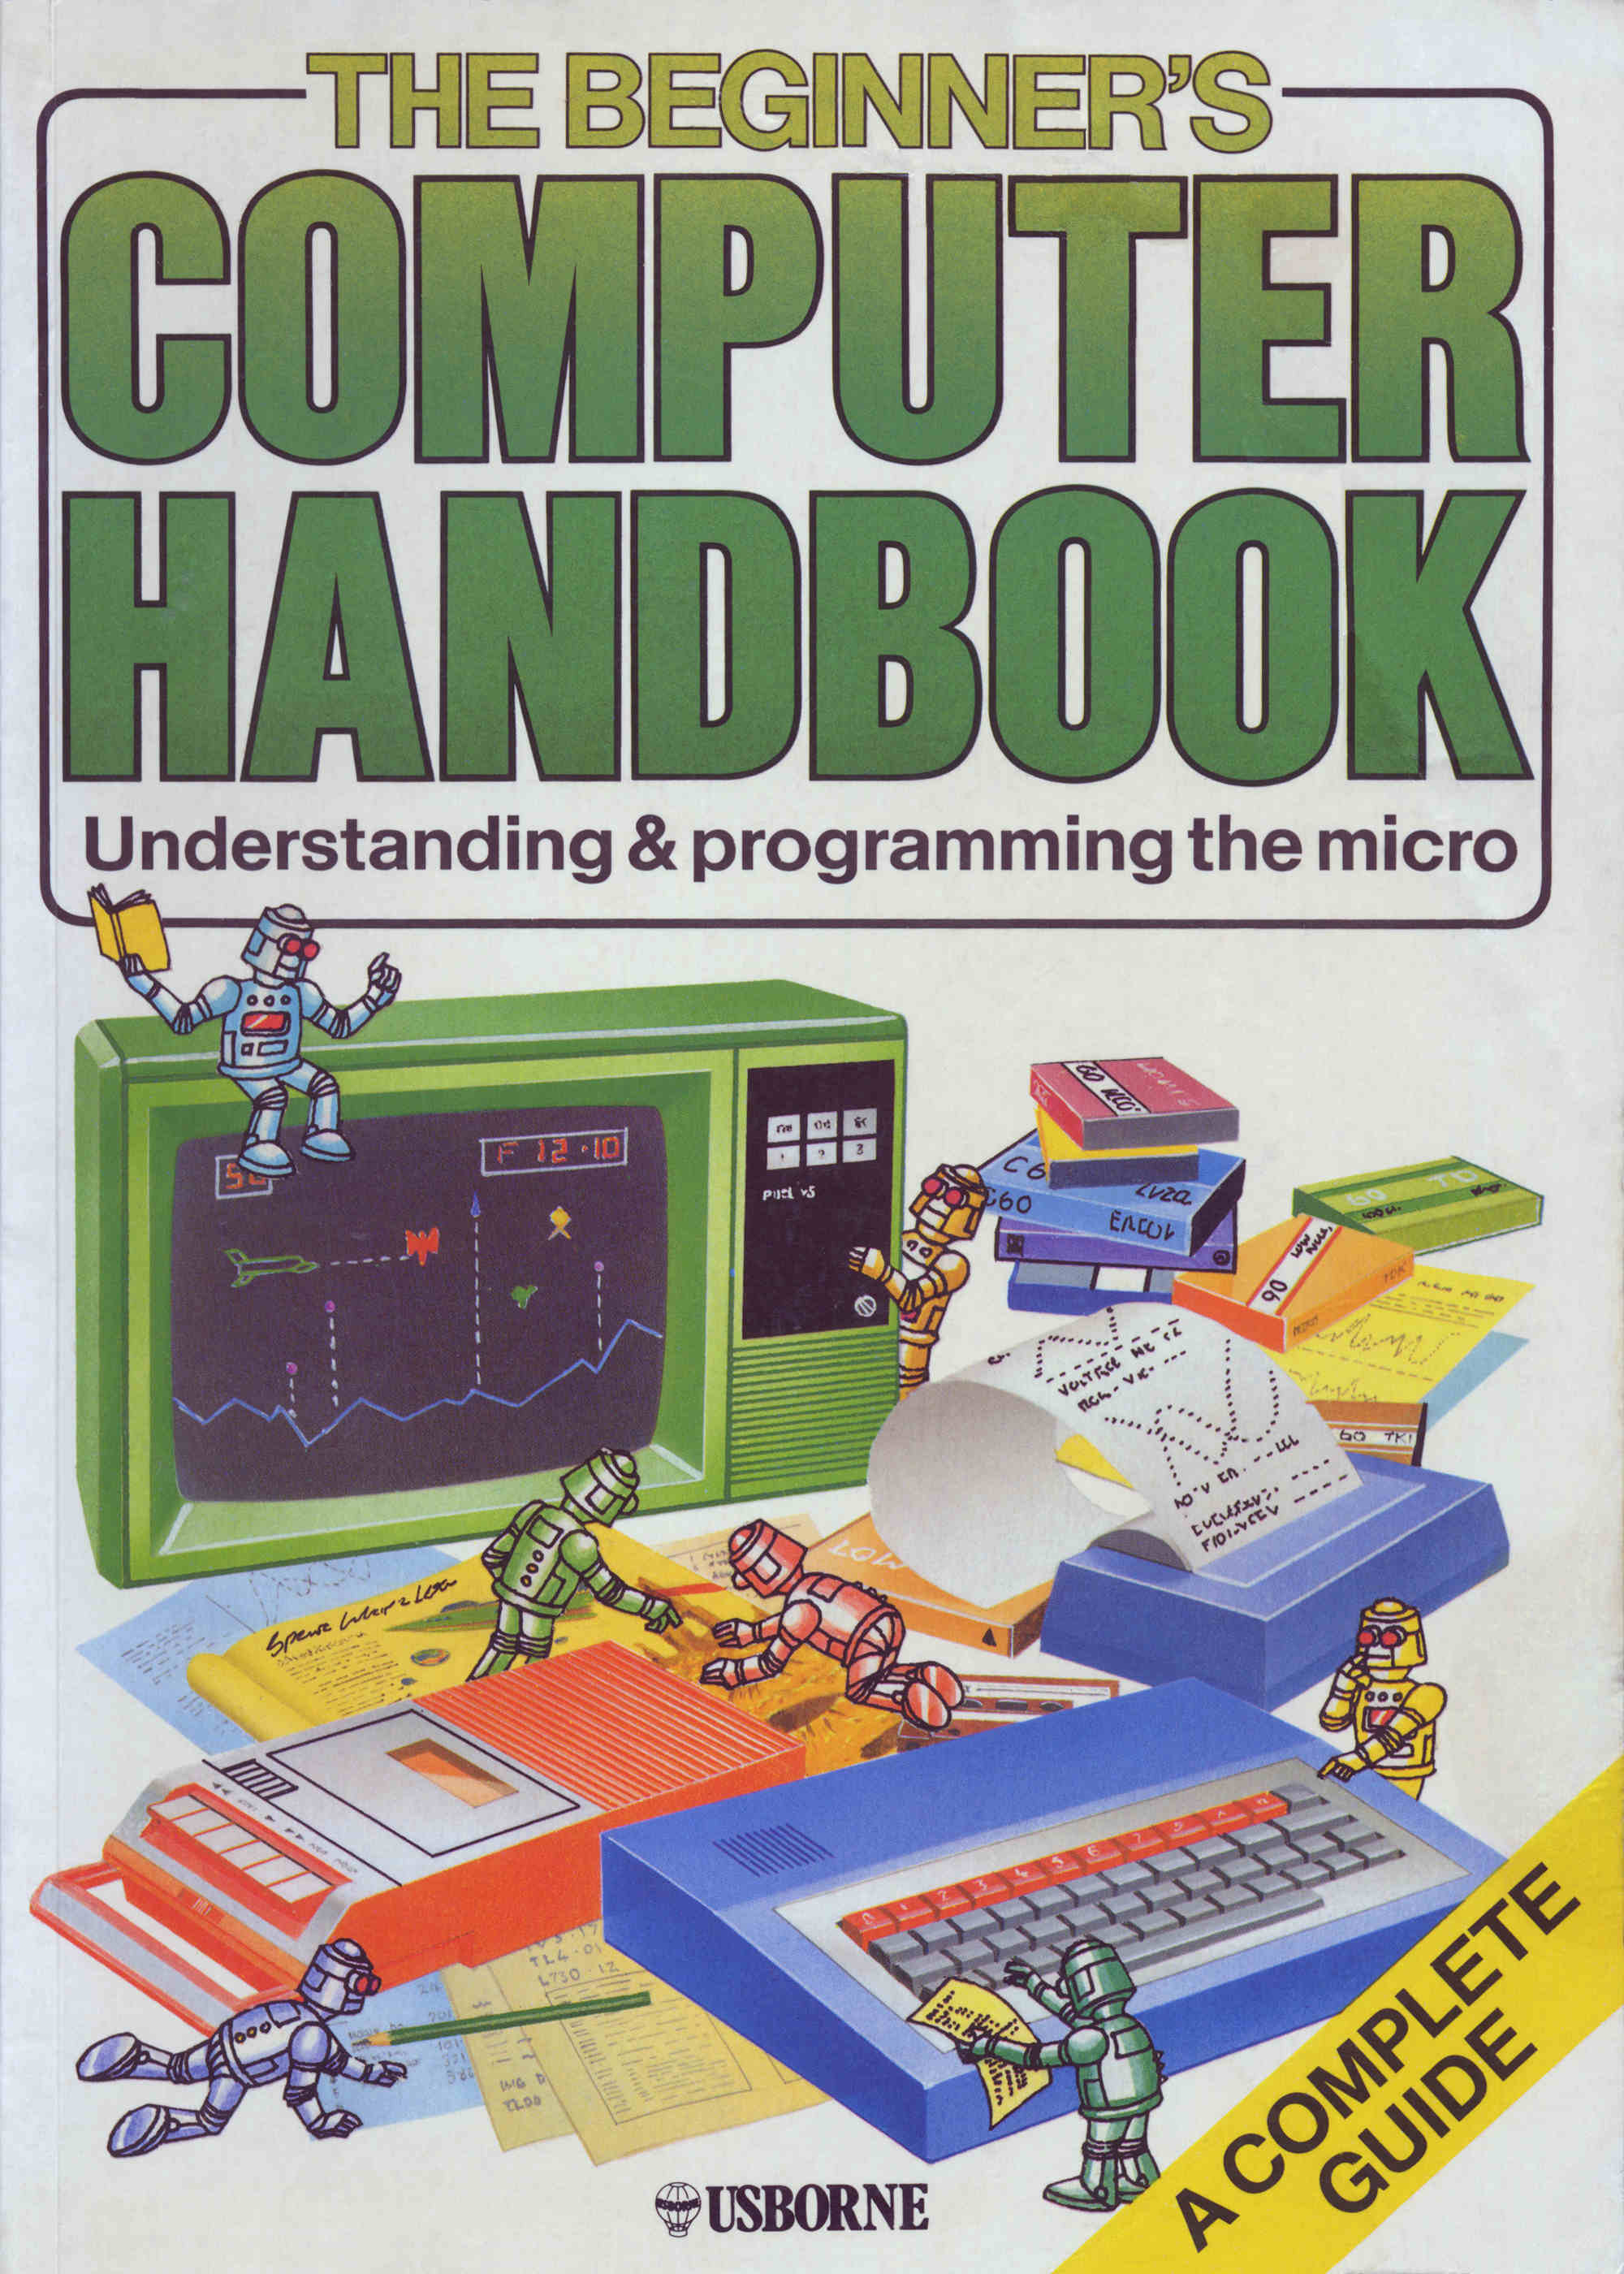 The Beginner's Computer Handbook image, screenshot or loading screen